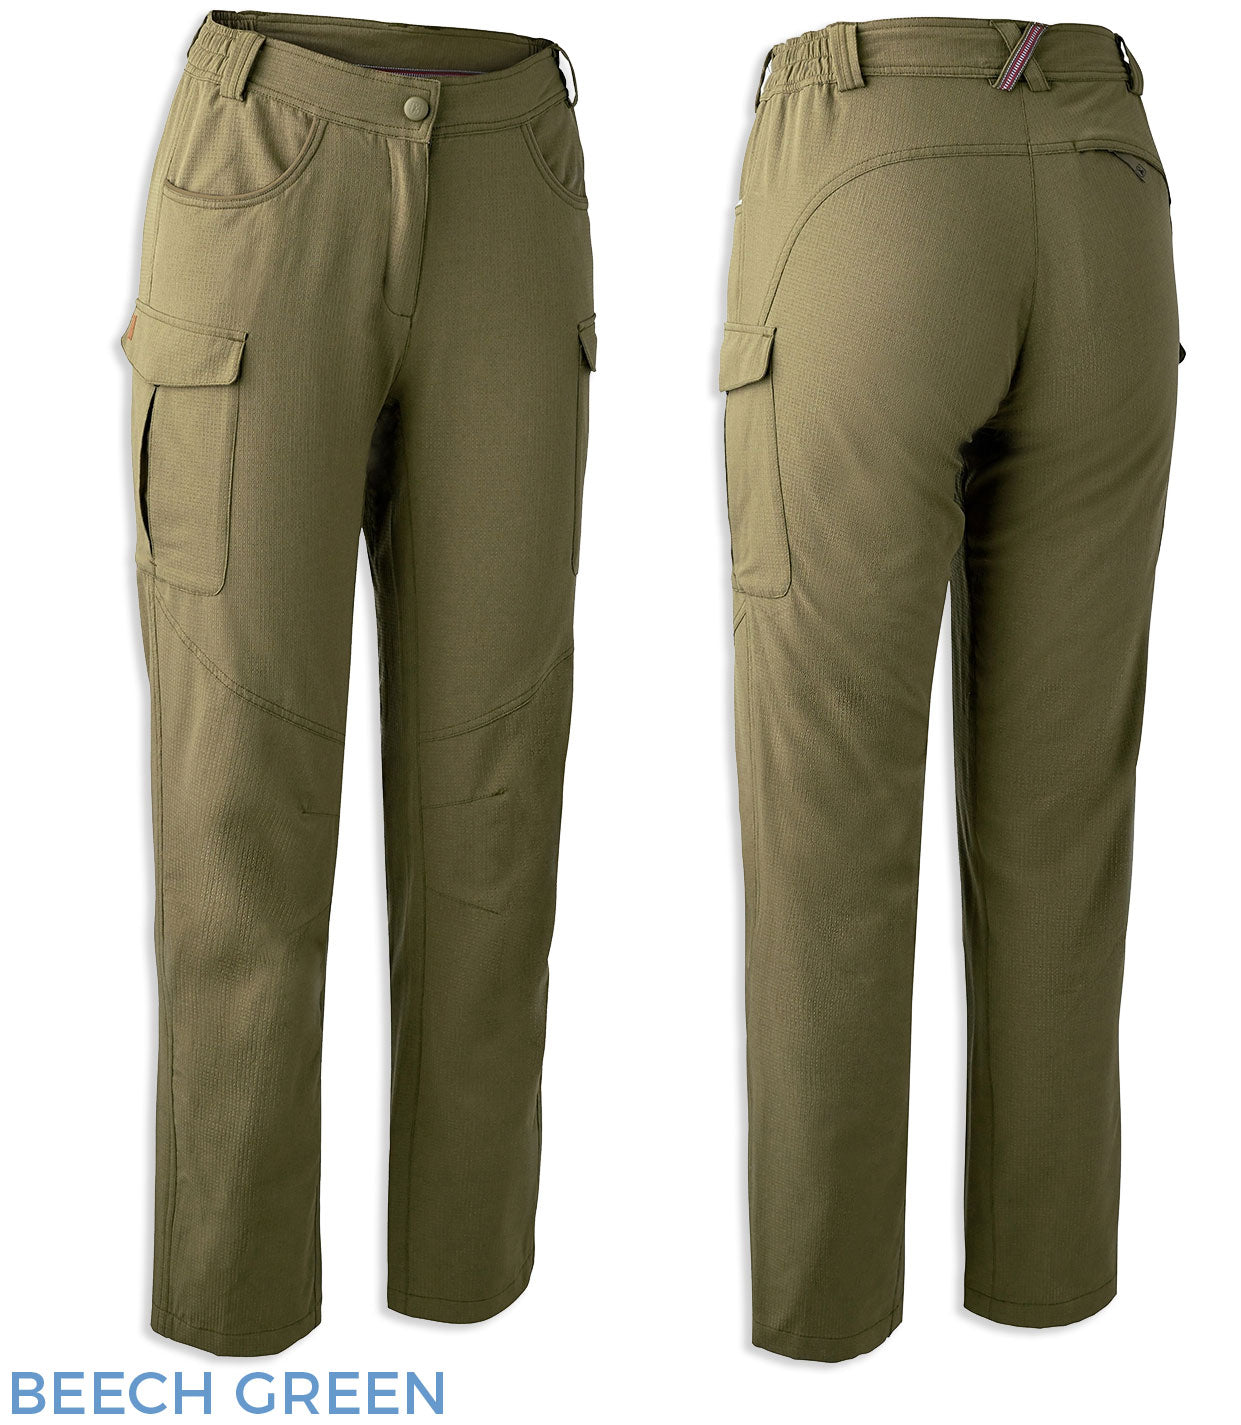 Beech Green Lady Rose Trail Trousers by Deerhunter